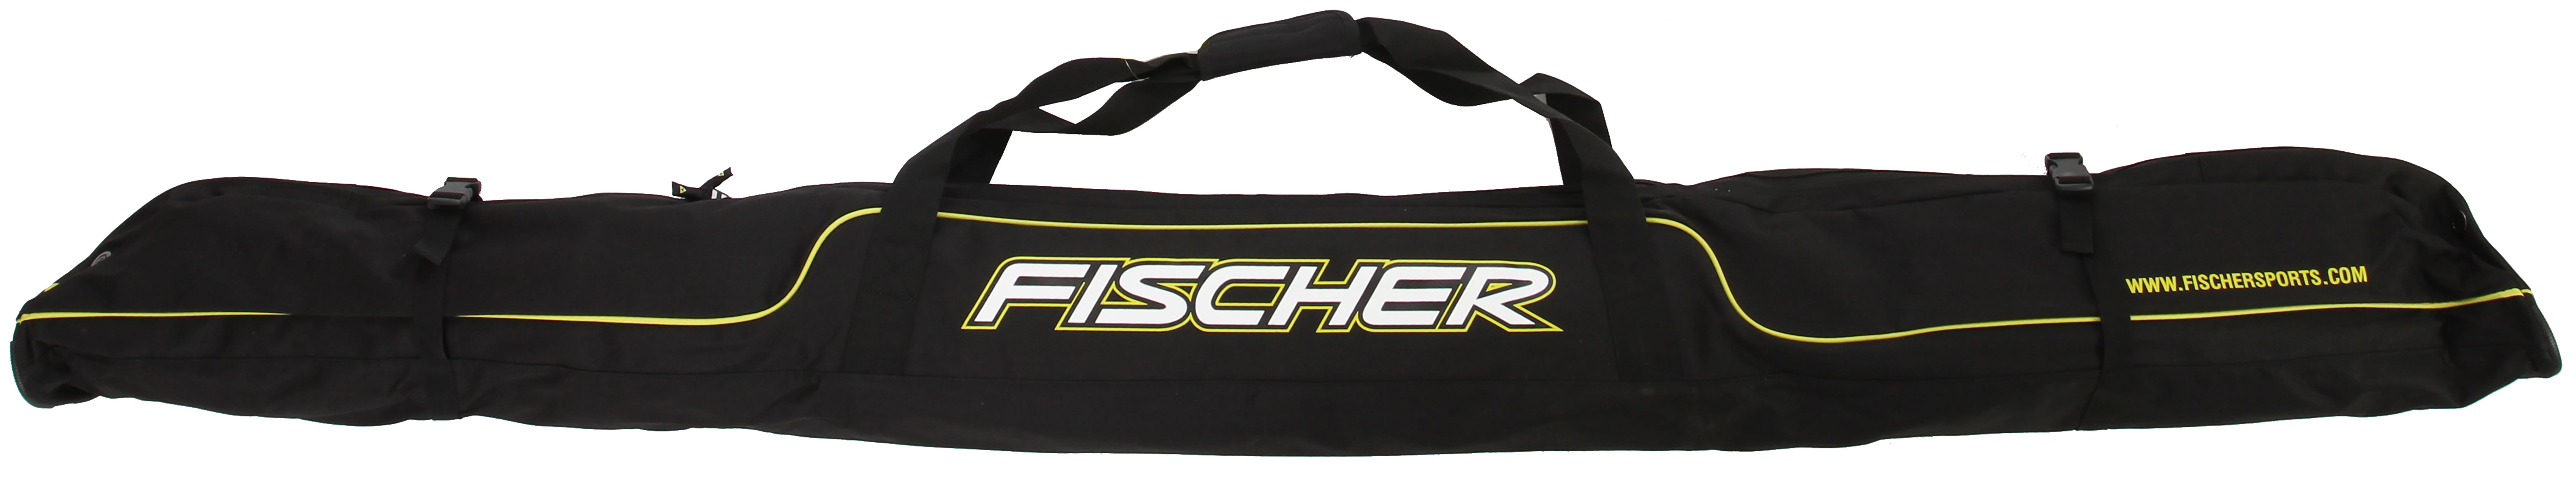 Fischer Xc Ski 3 Pair Performance Cross Country Bag Thumbnail 1